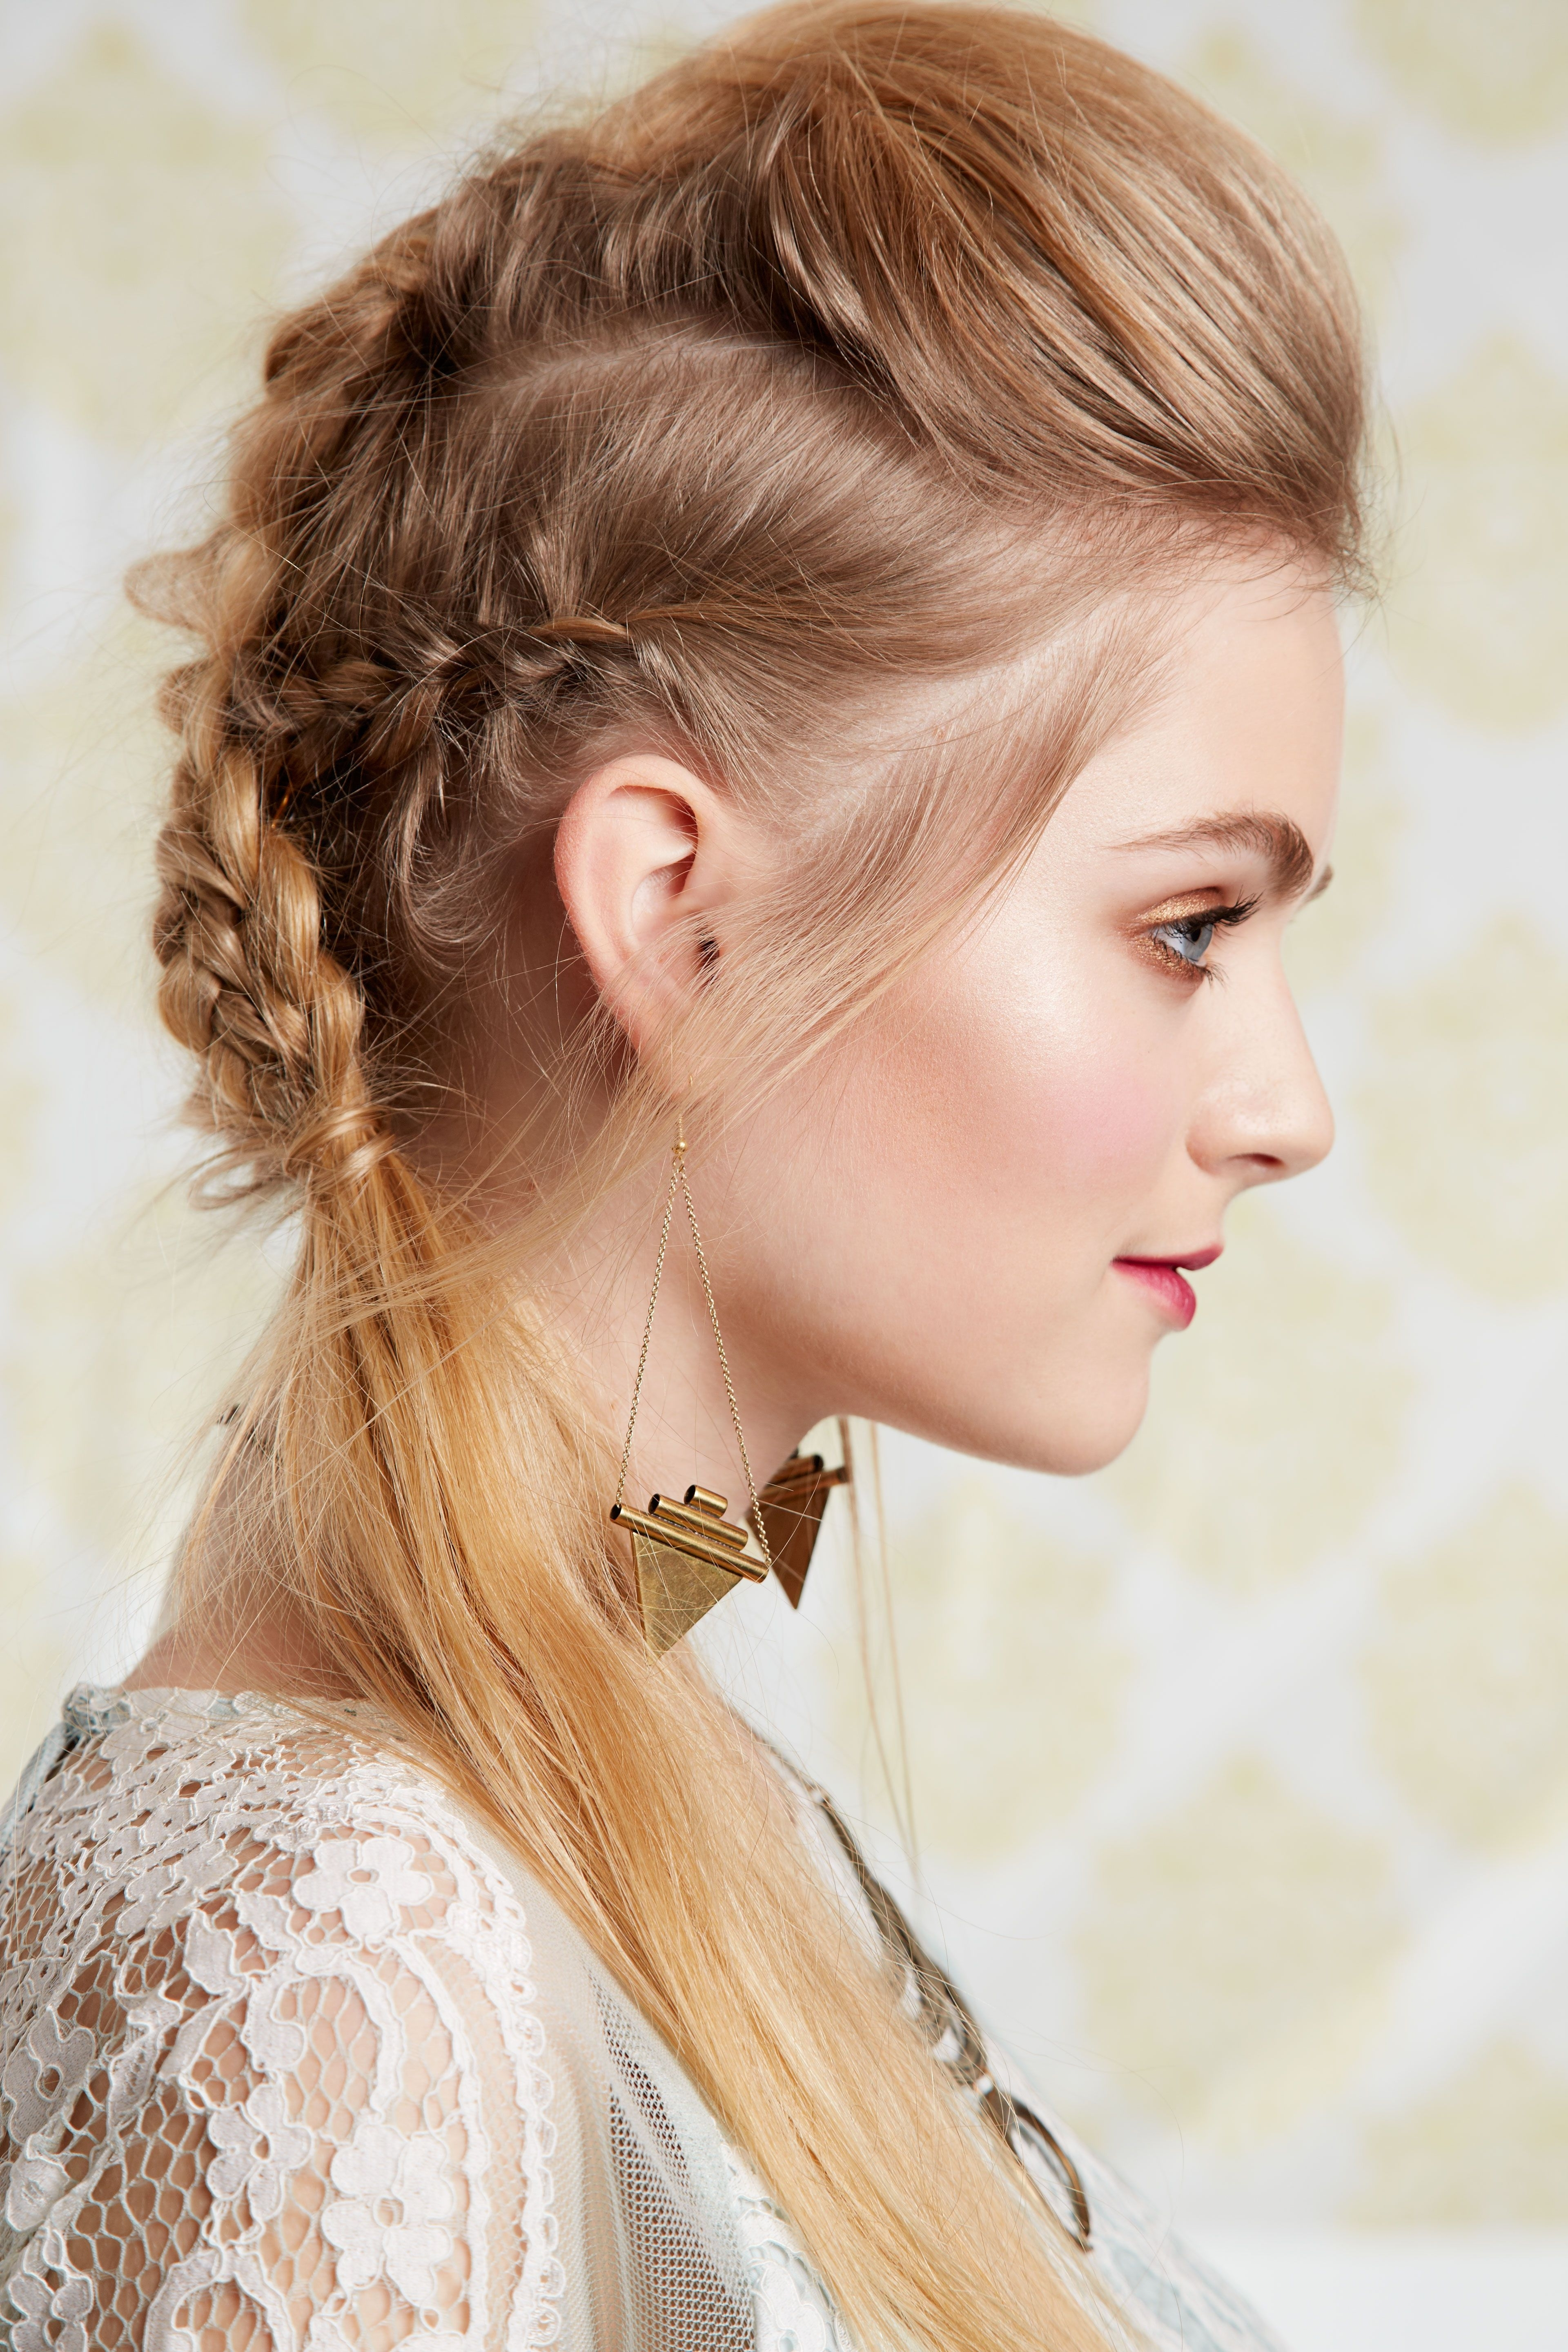 13 Cute Easy Hairstyles For 2018 – Best Quick Hairstyles For Dirty Hair Inside Current Punky Ponytail Hairstyles (View 2 of 20)